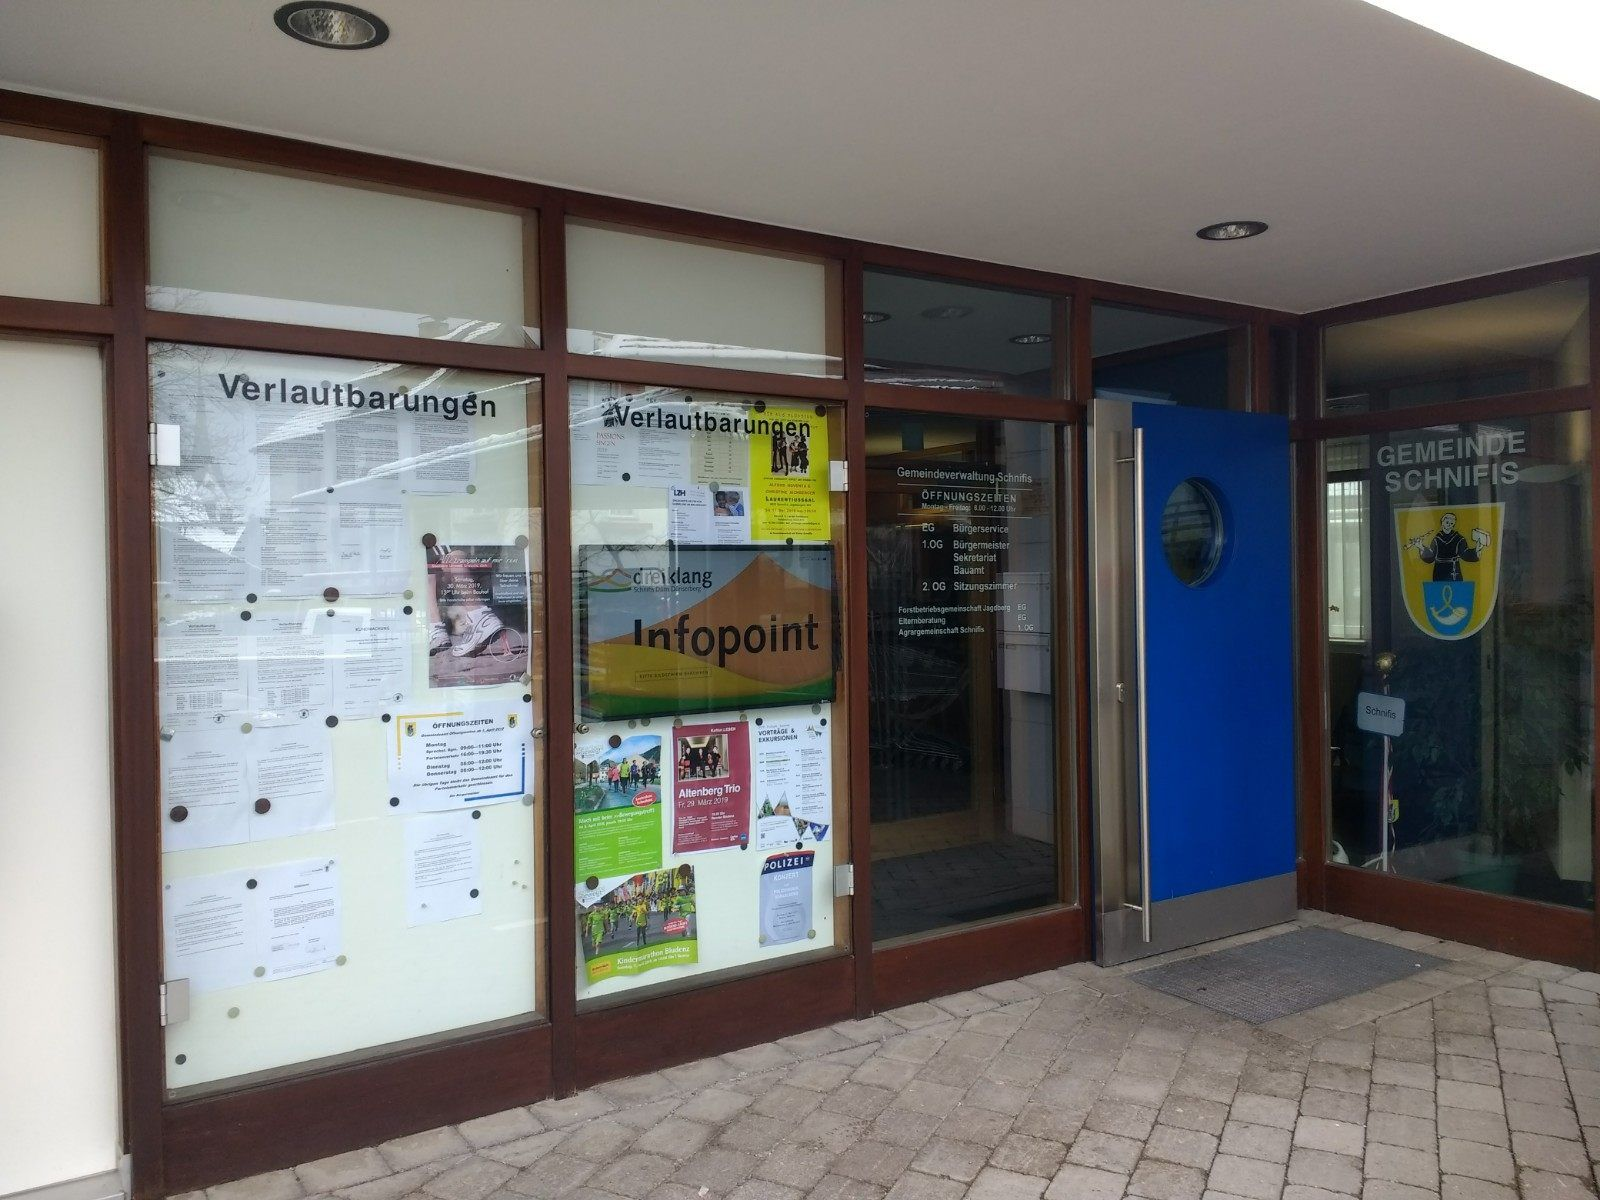 Infopoint Schnifis